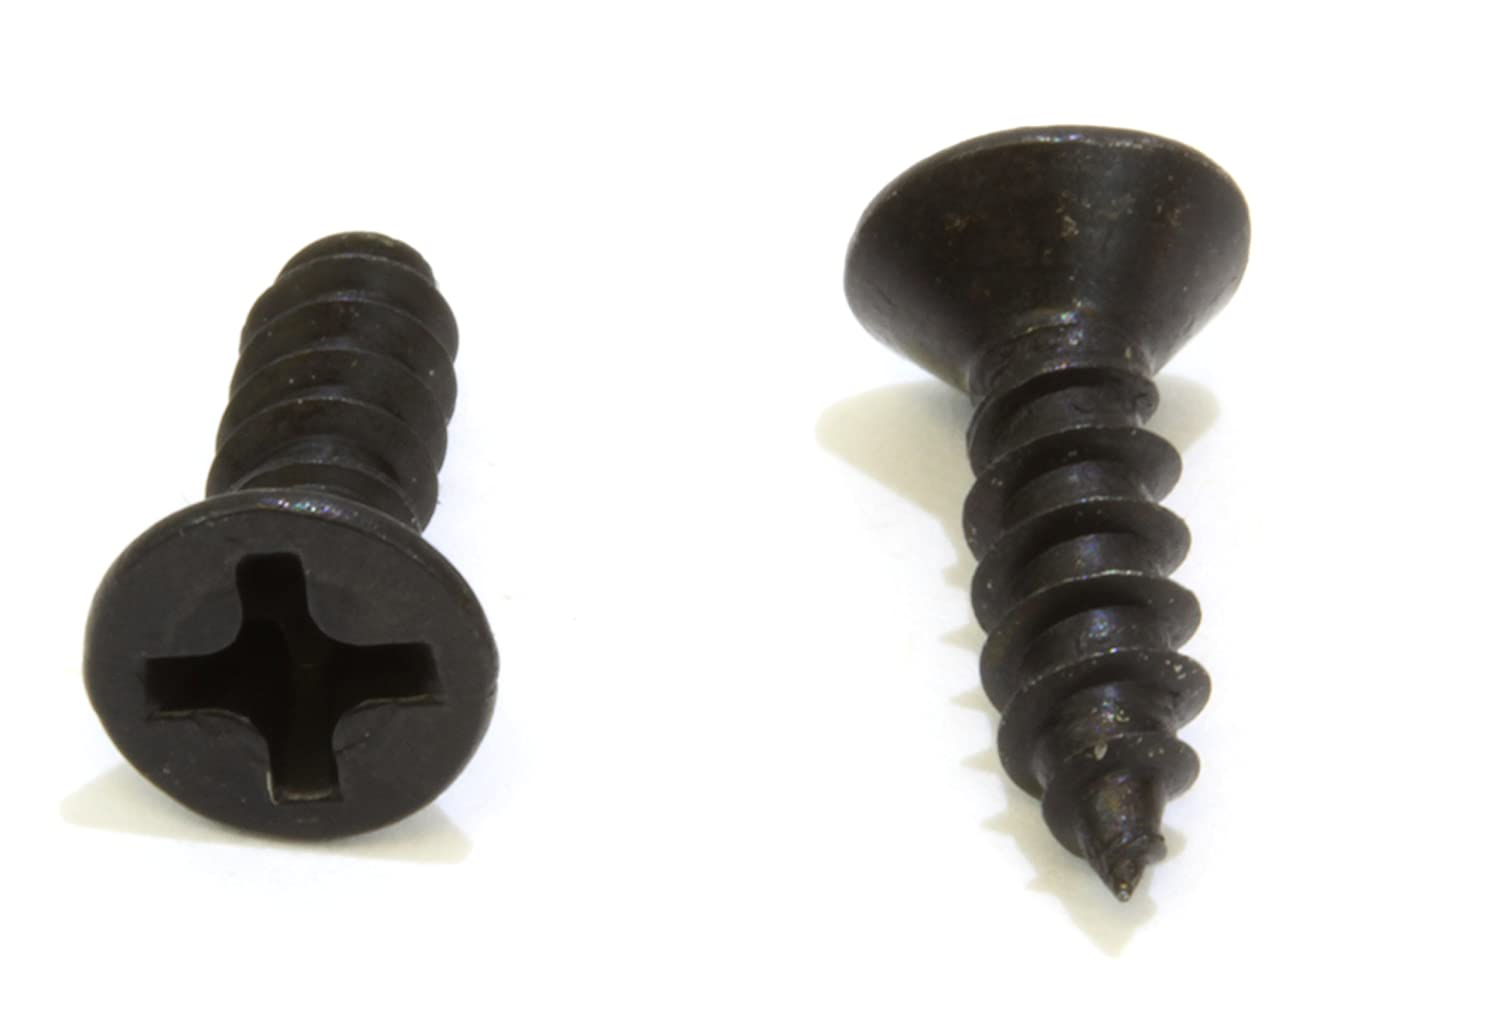 Stainless Steel Screw by Bolt Dropper 304 18-8 #6 X 3//4 Black Oxide Coated Stainless Flat Head Phillips Wood Screw, 100 pc